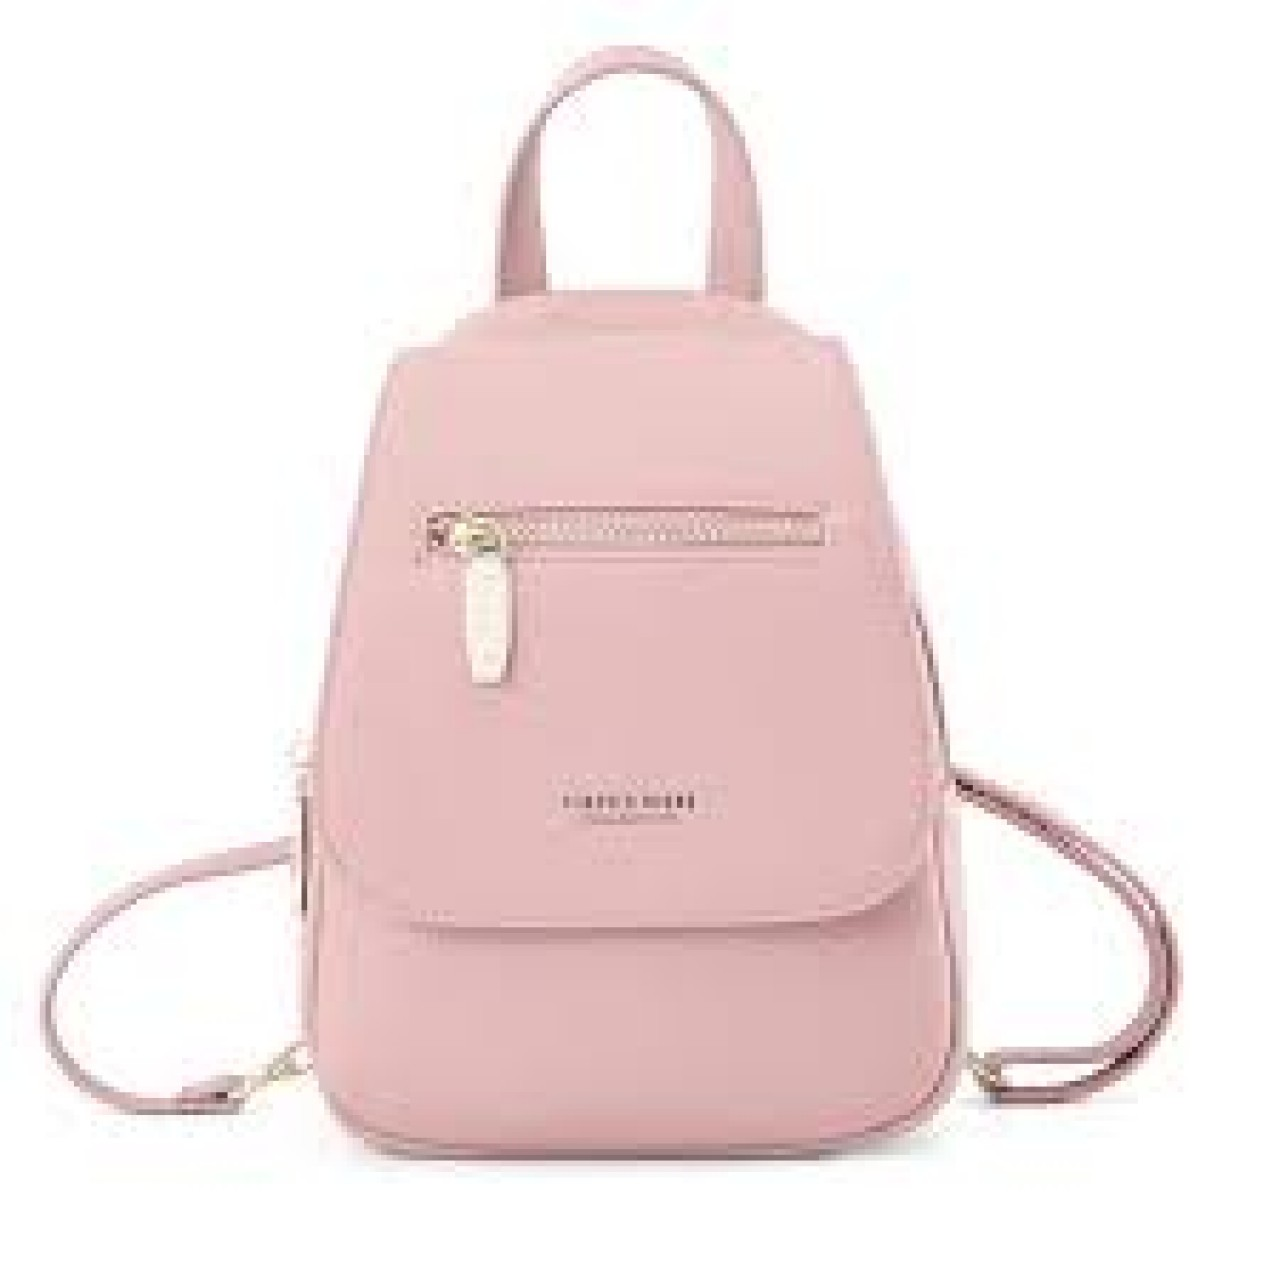 Aeeque Mini Backpack Purse for Women Crossbody